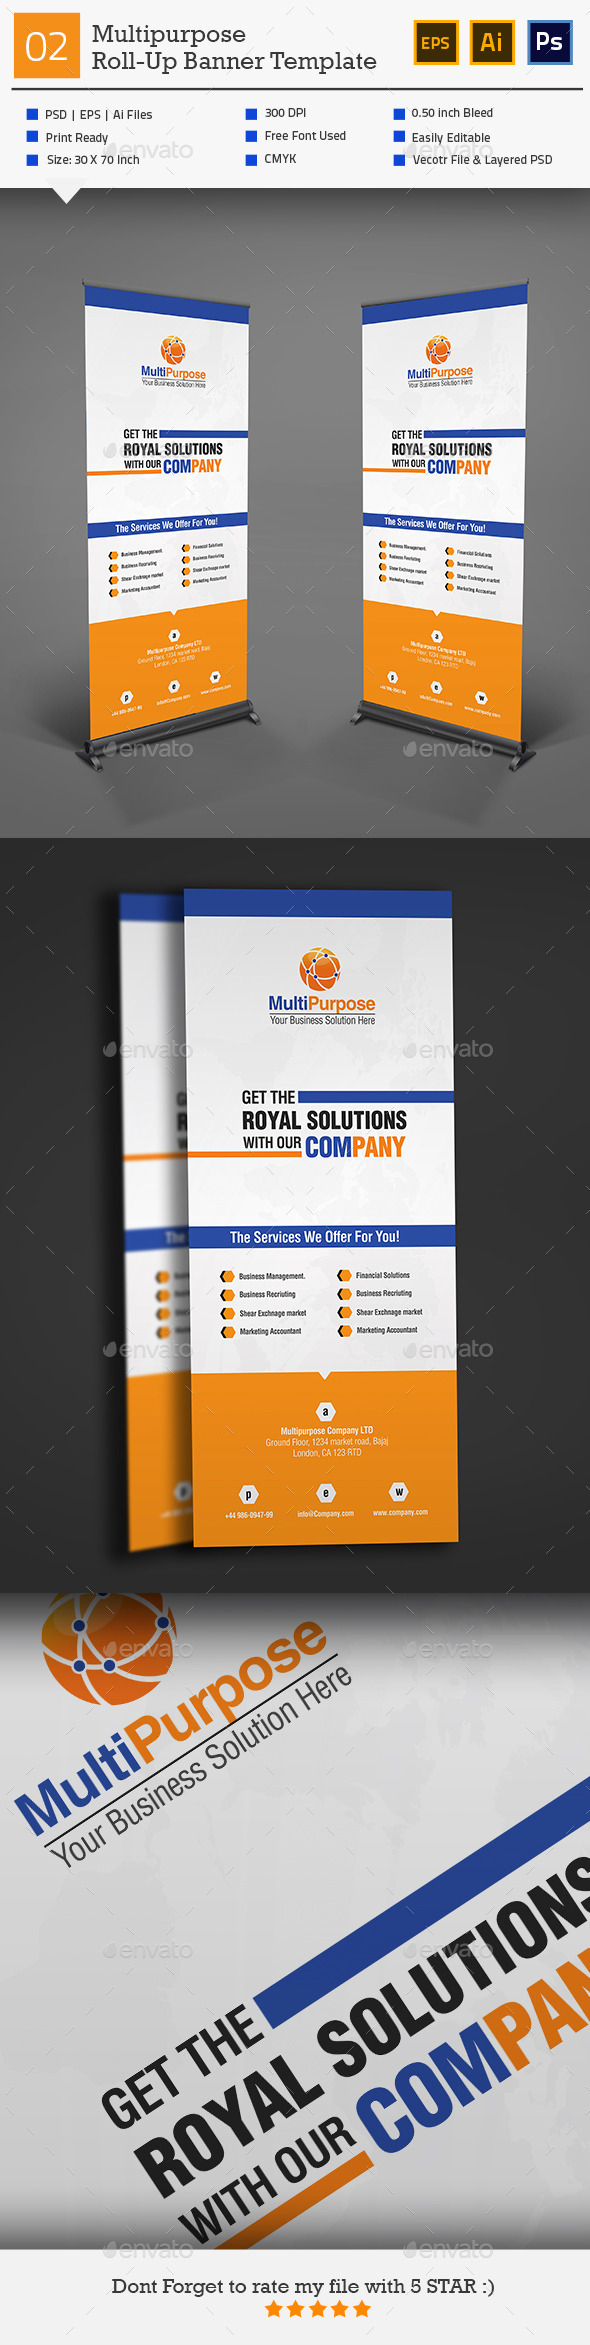 GraphicRiver Roll Up Banner Template 02 10945326